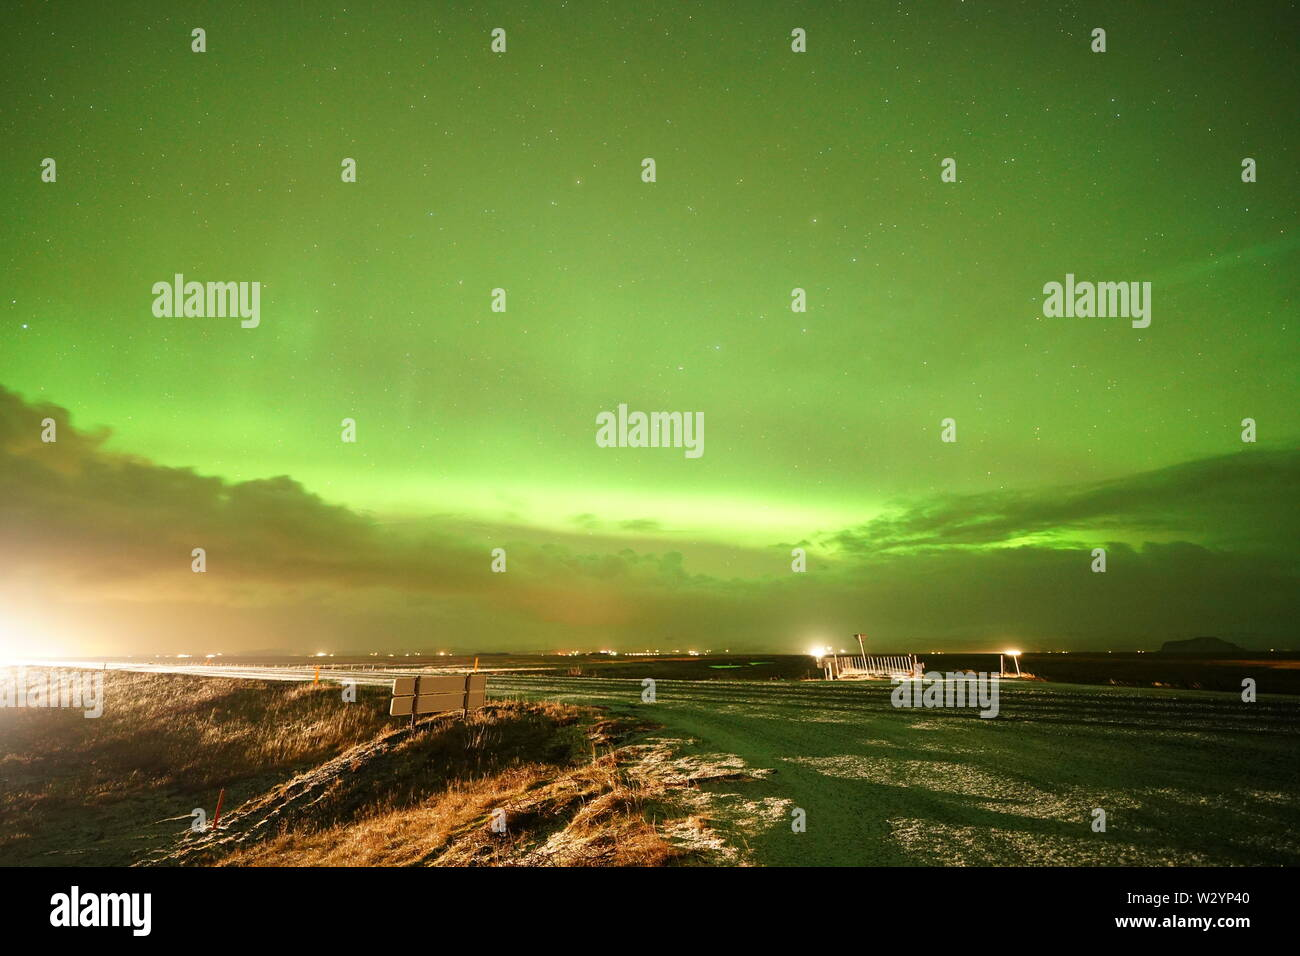 Strong Northern lights in Iceland on the road - Stock Image